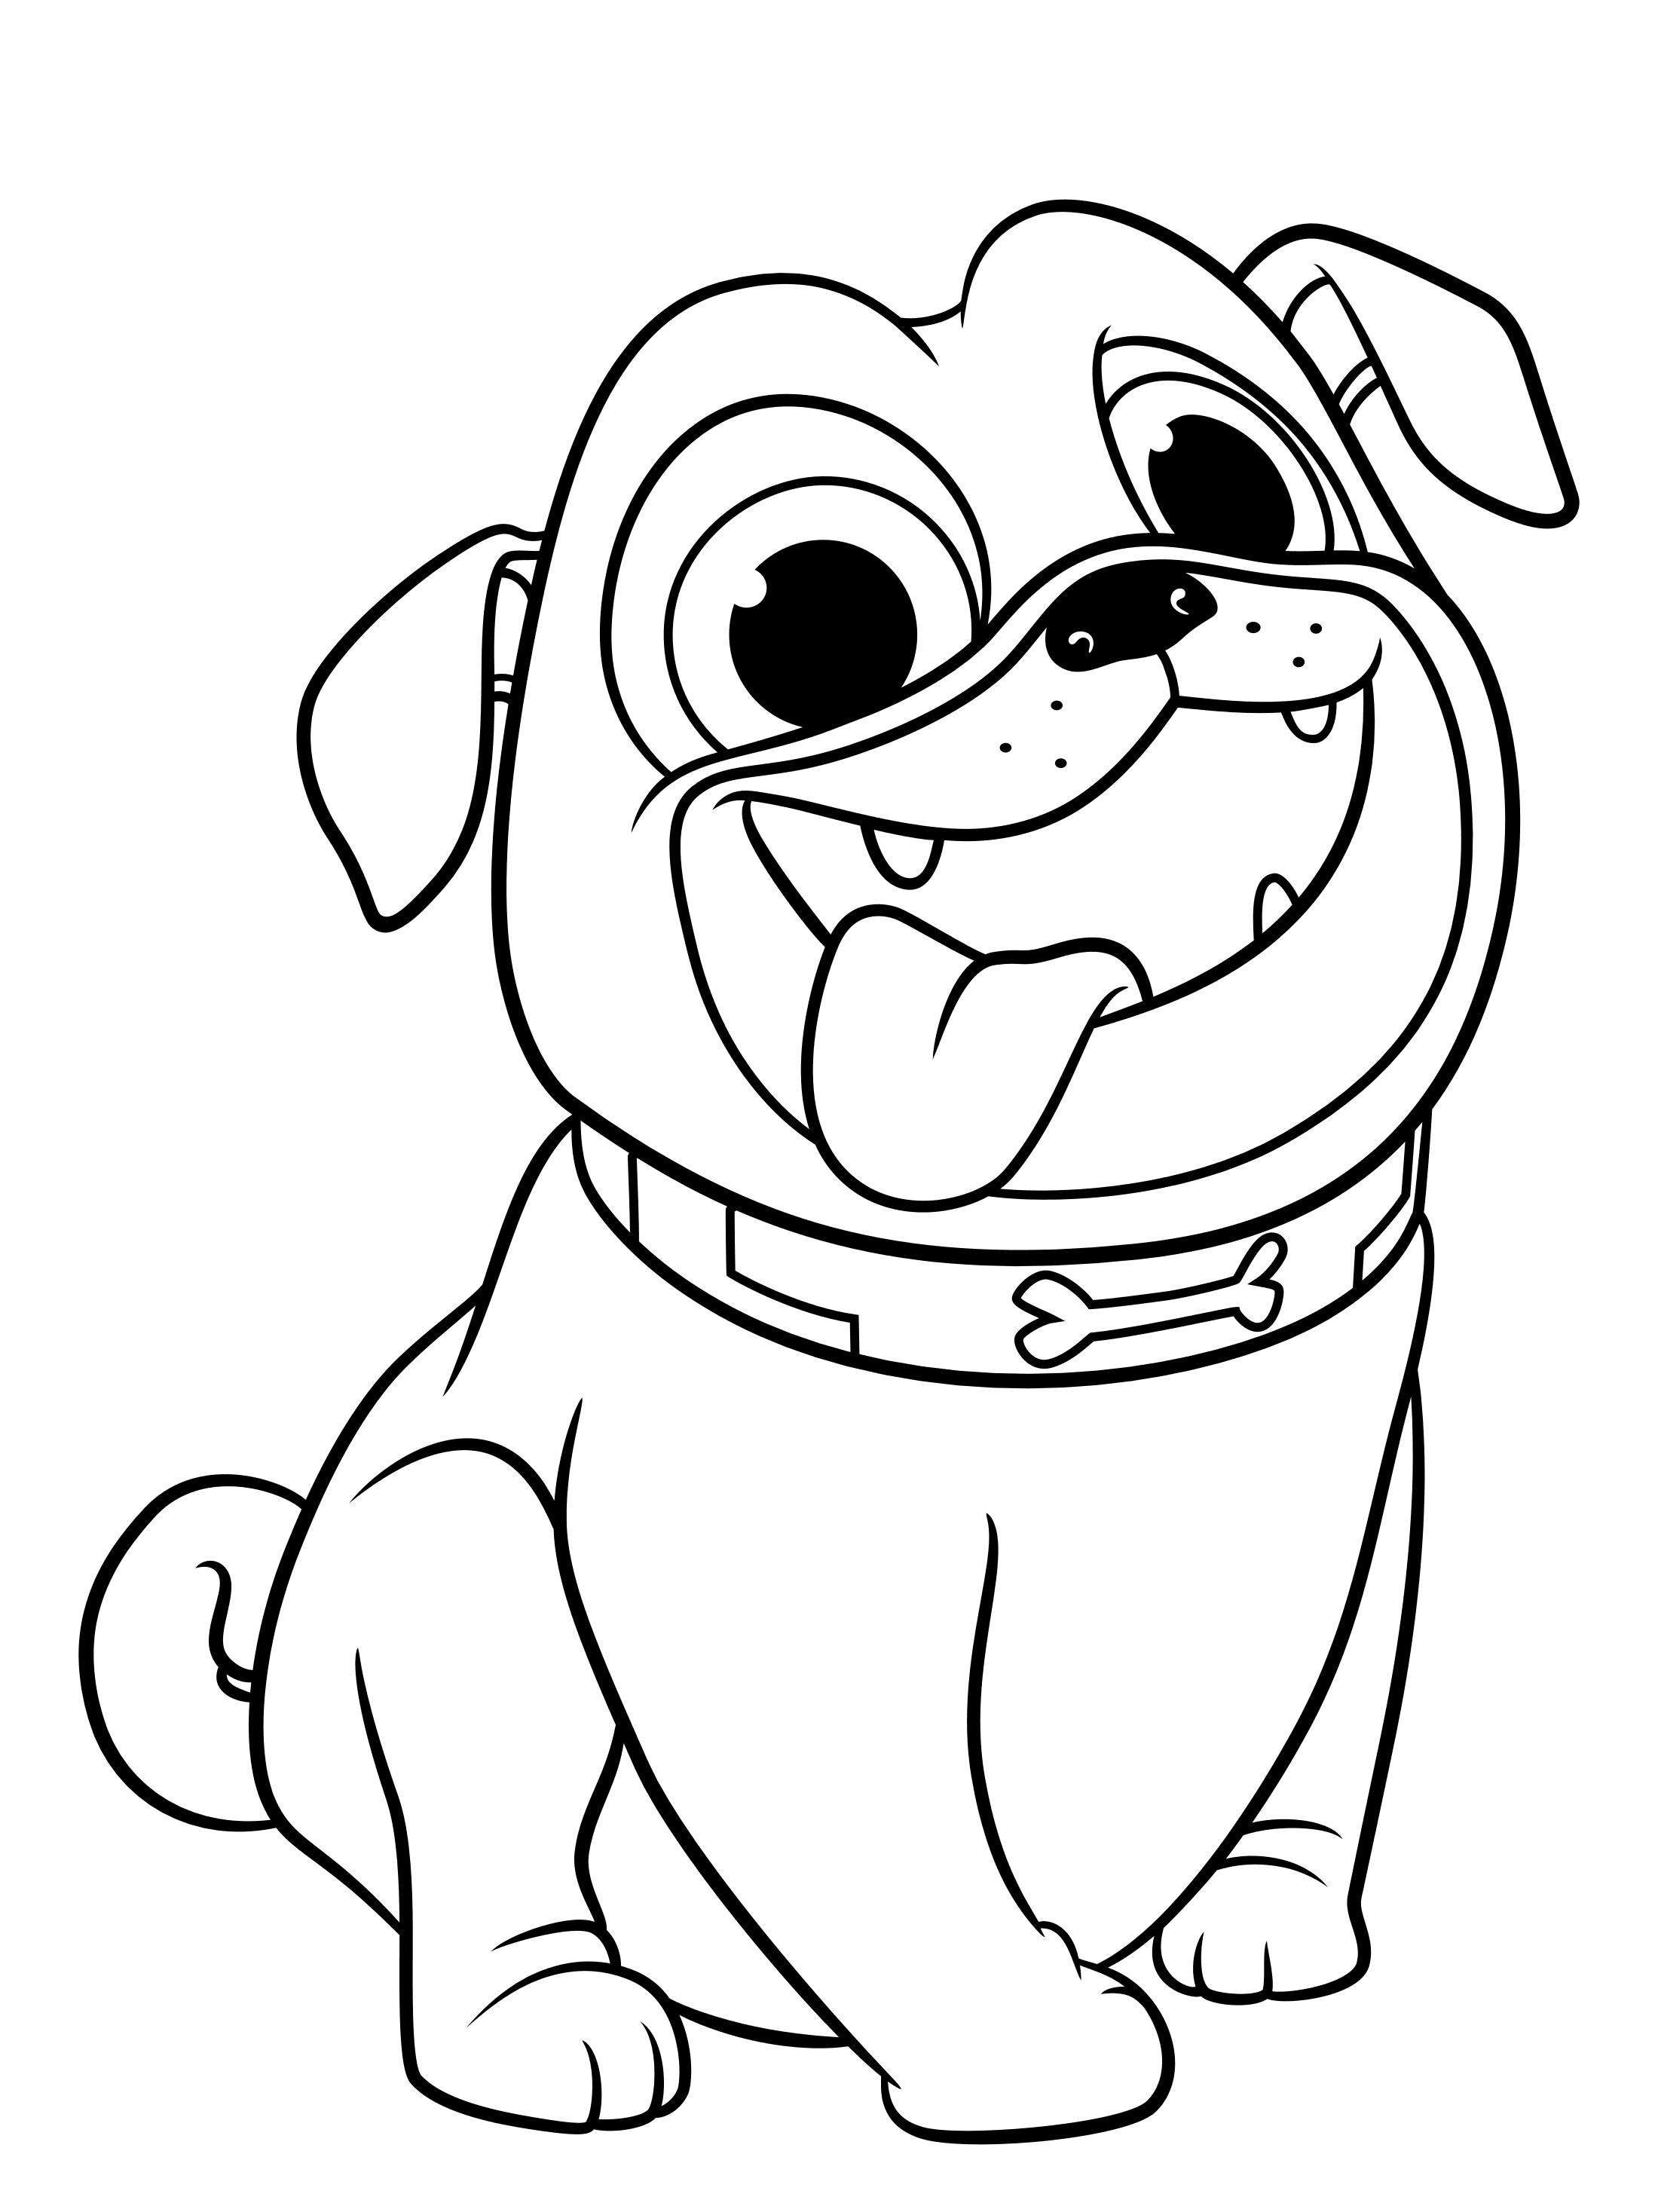 pictures of puppies to color puppy coloring pages free printable pictures coloring of color puppies pictures to